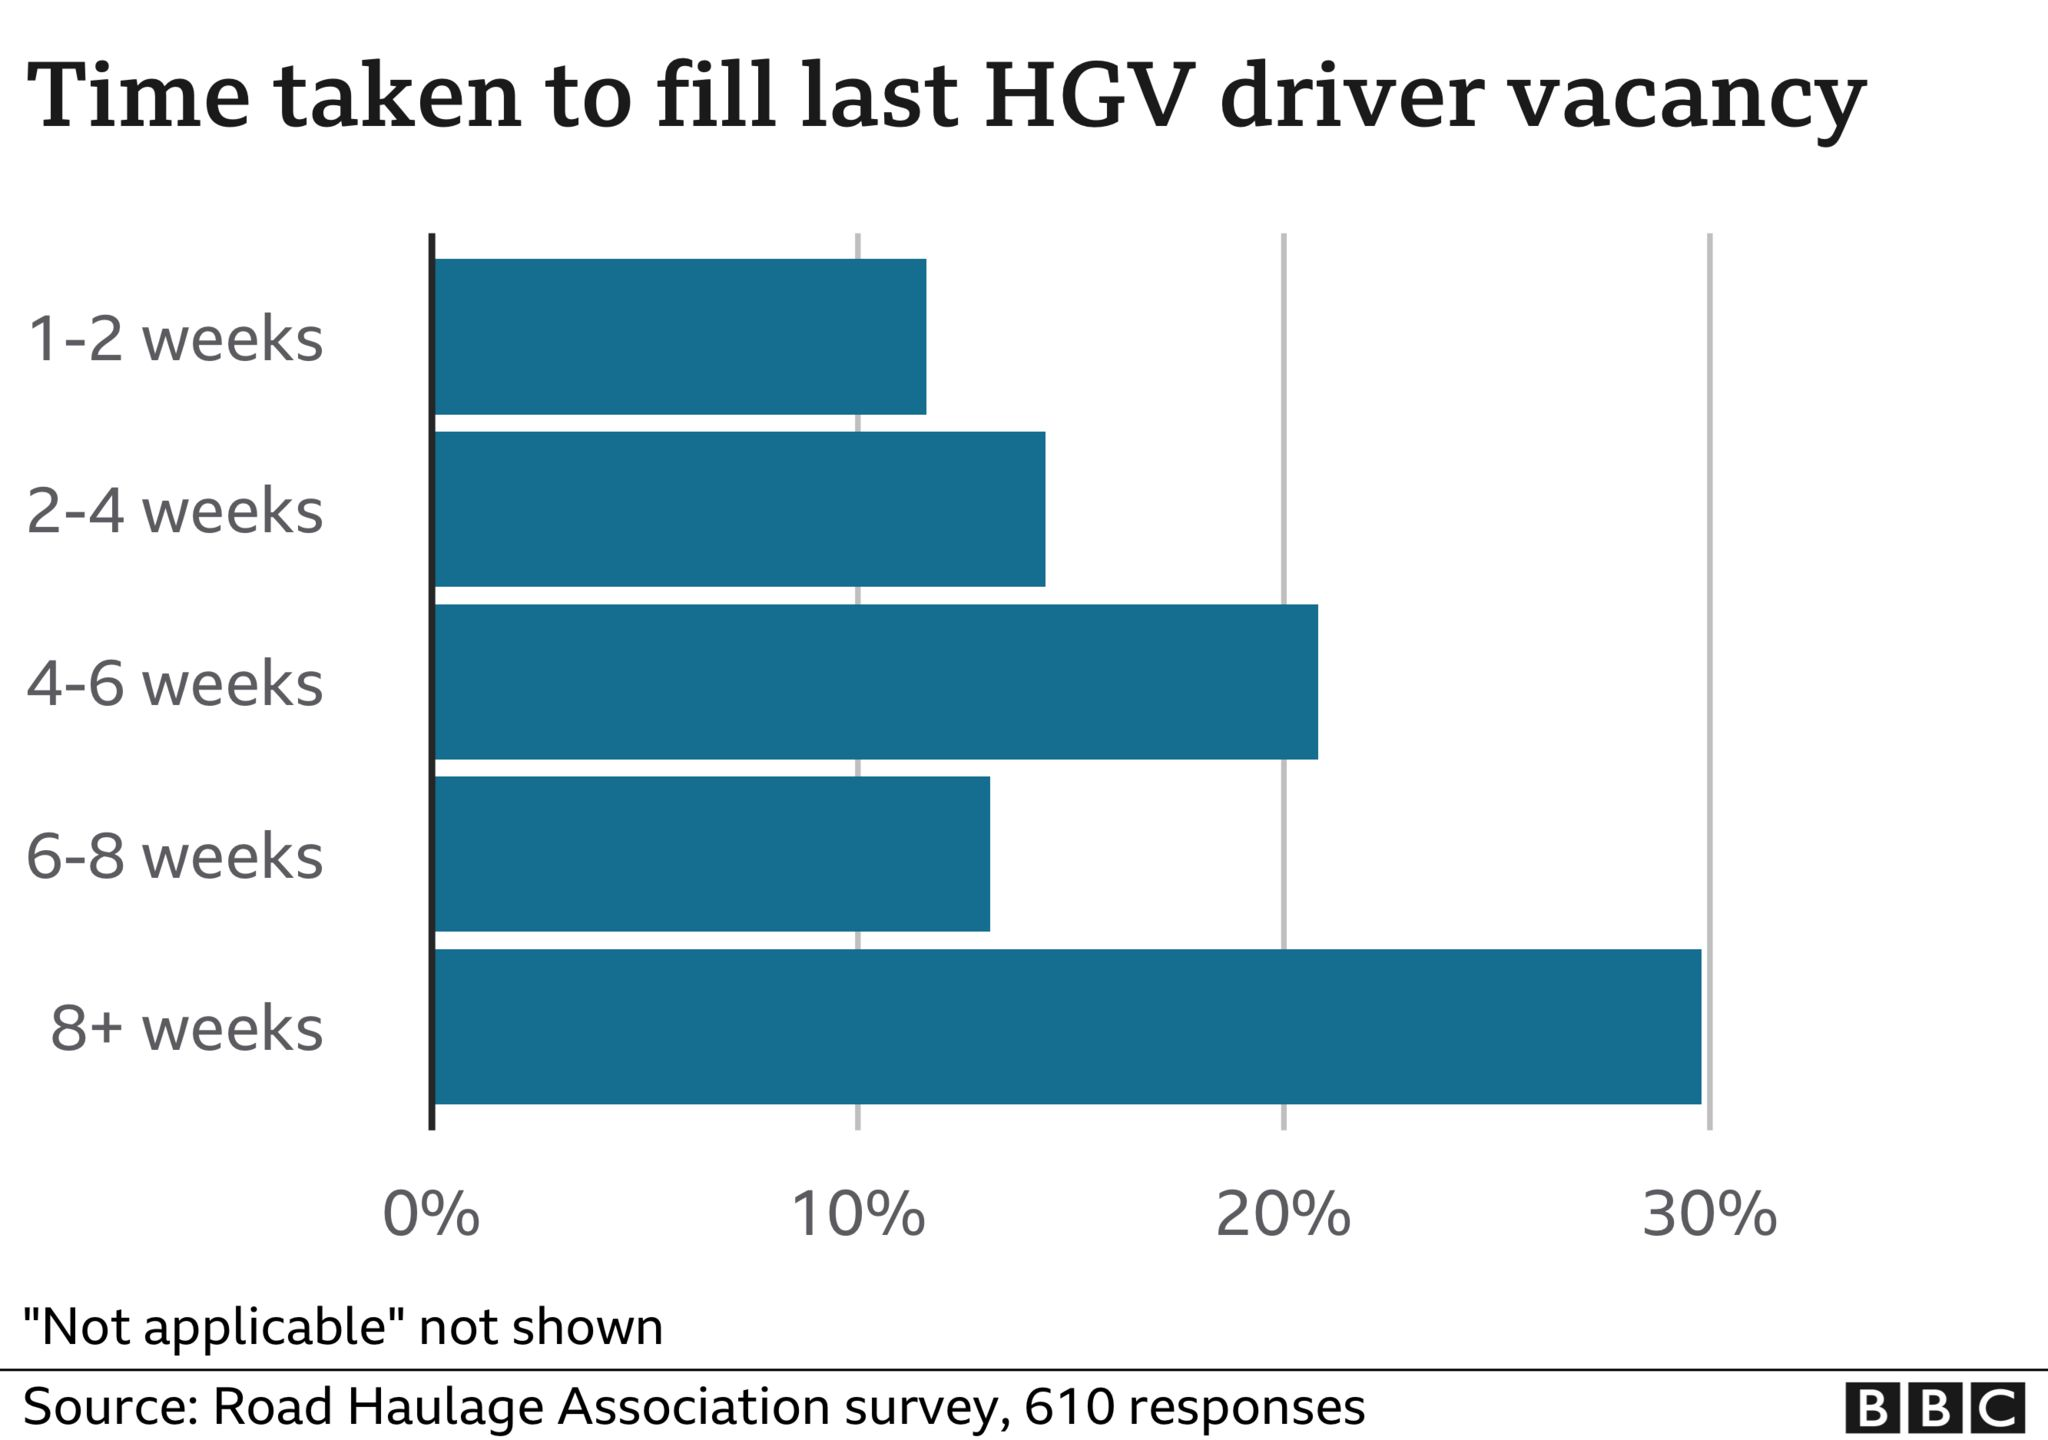 Survey findings showing time taken to fill HGV driver vacancies